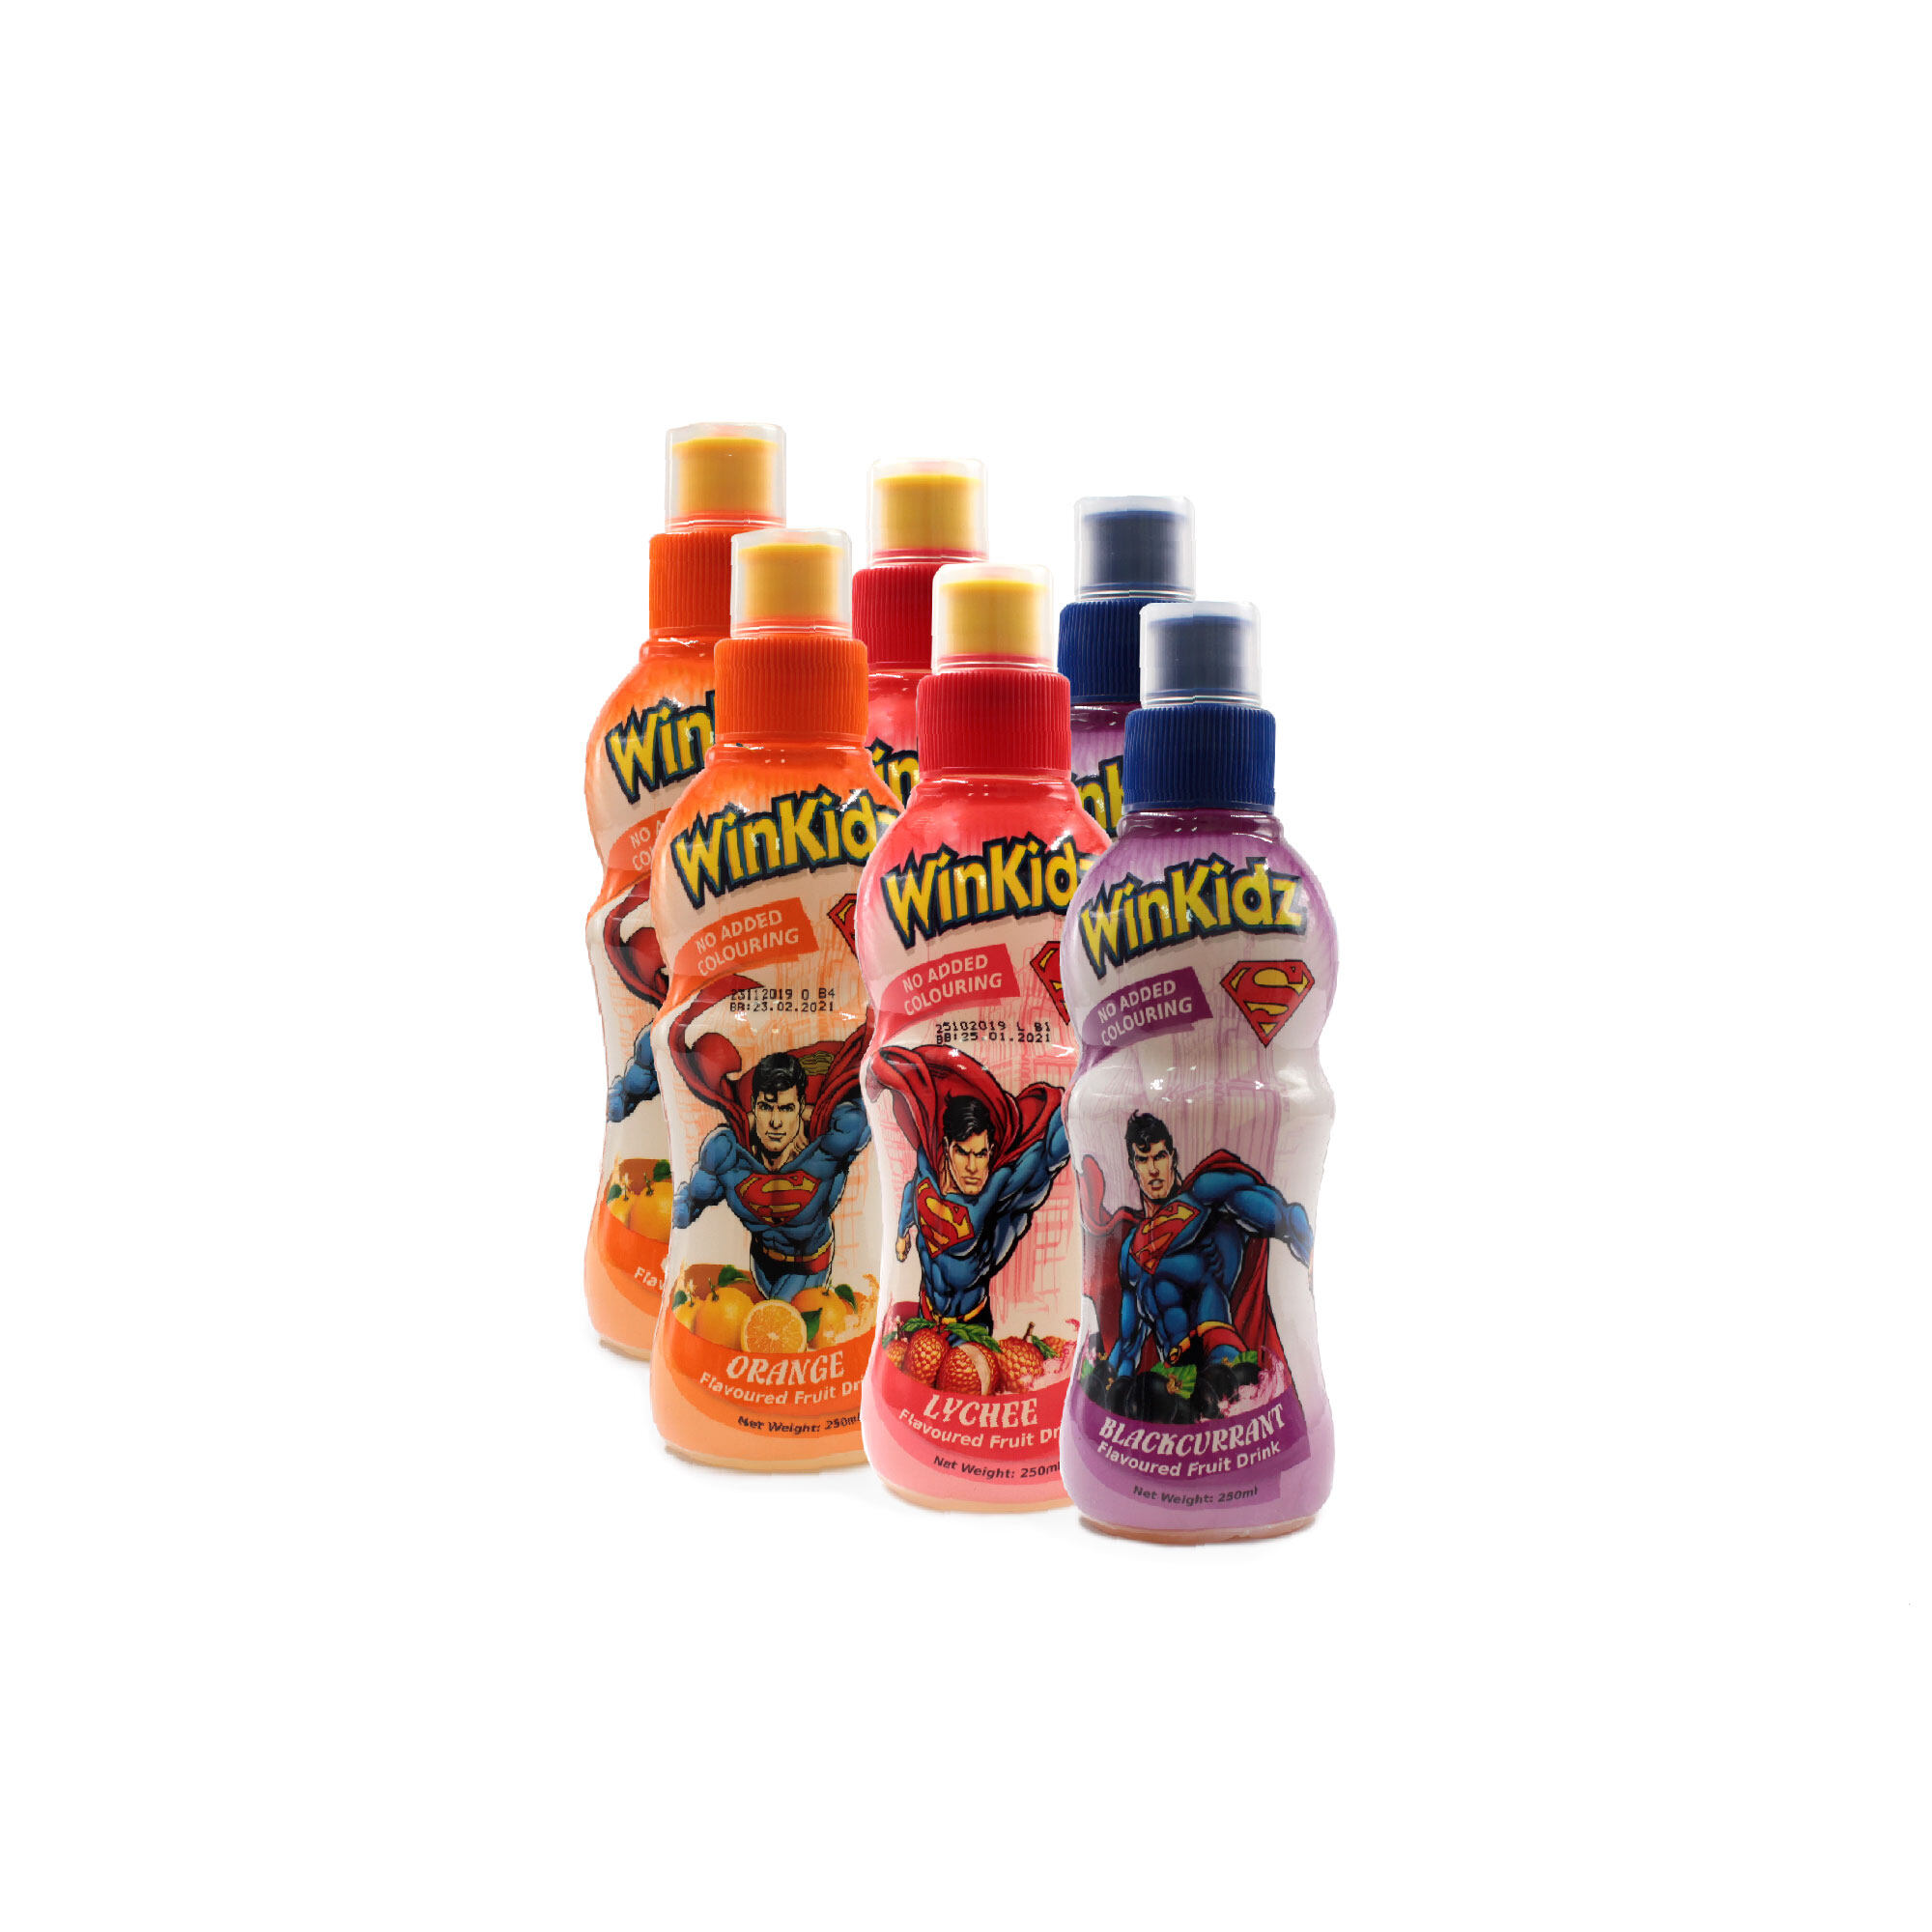 DC Comic Winkidz Superman Fruit Drink For Children 6 In 1 Value Set 250Ml X 6 - Mix Blackcurrant Lychee Orange